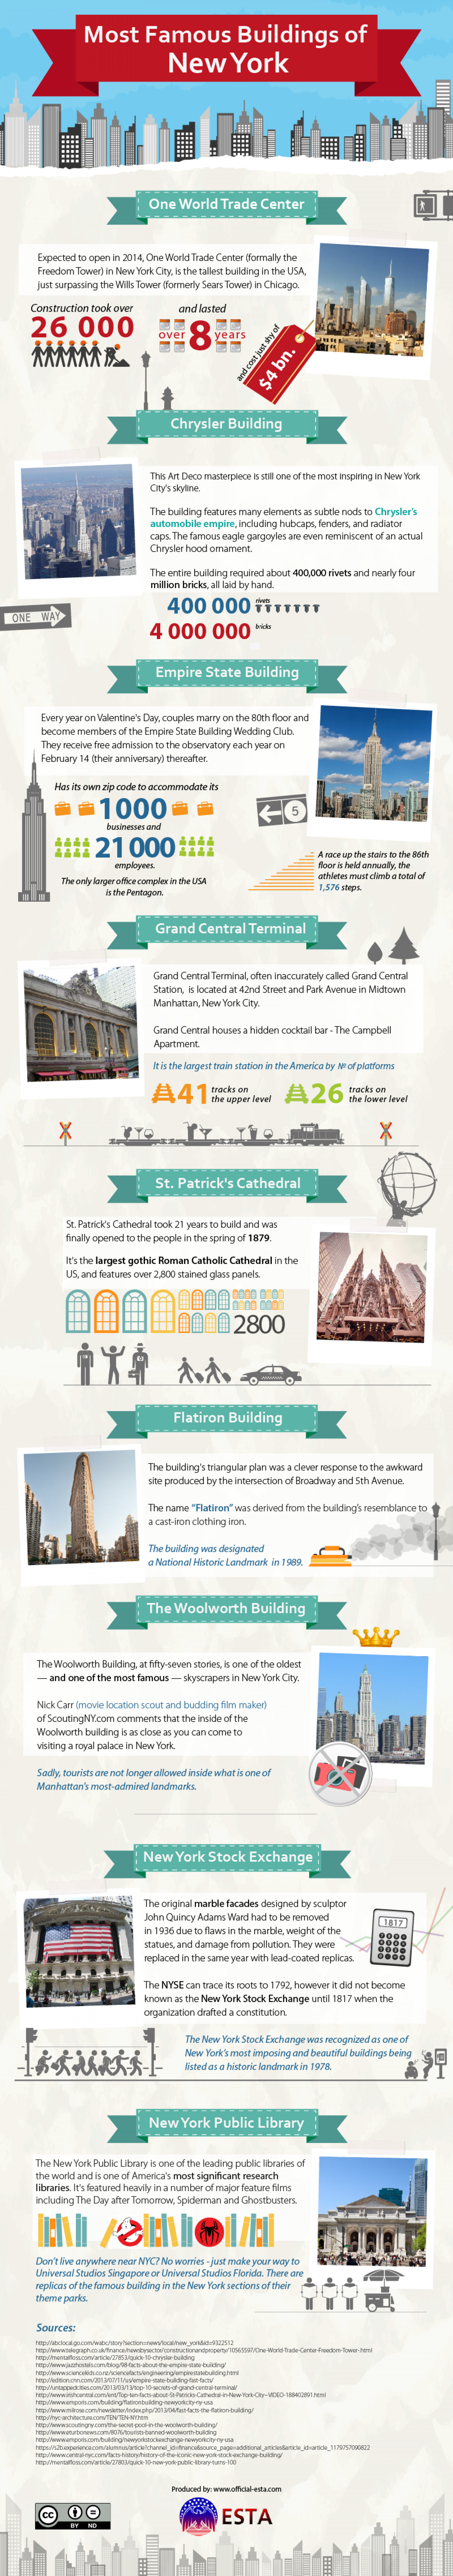 Most Famous Buildings of New York Infographic